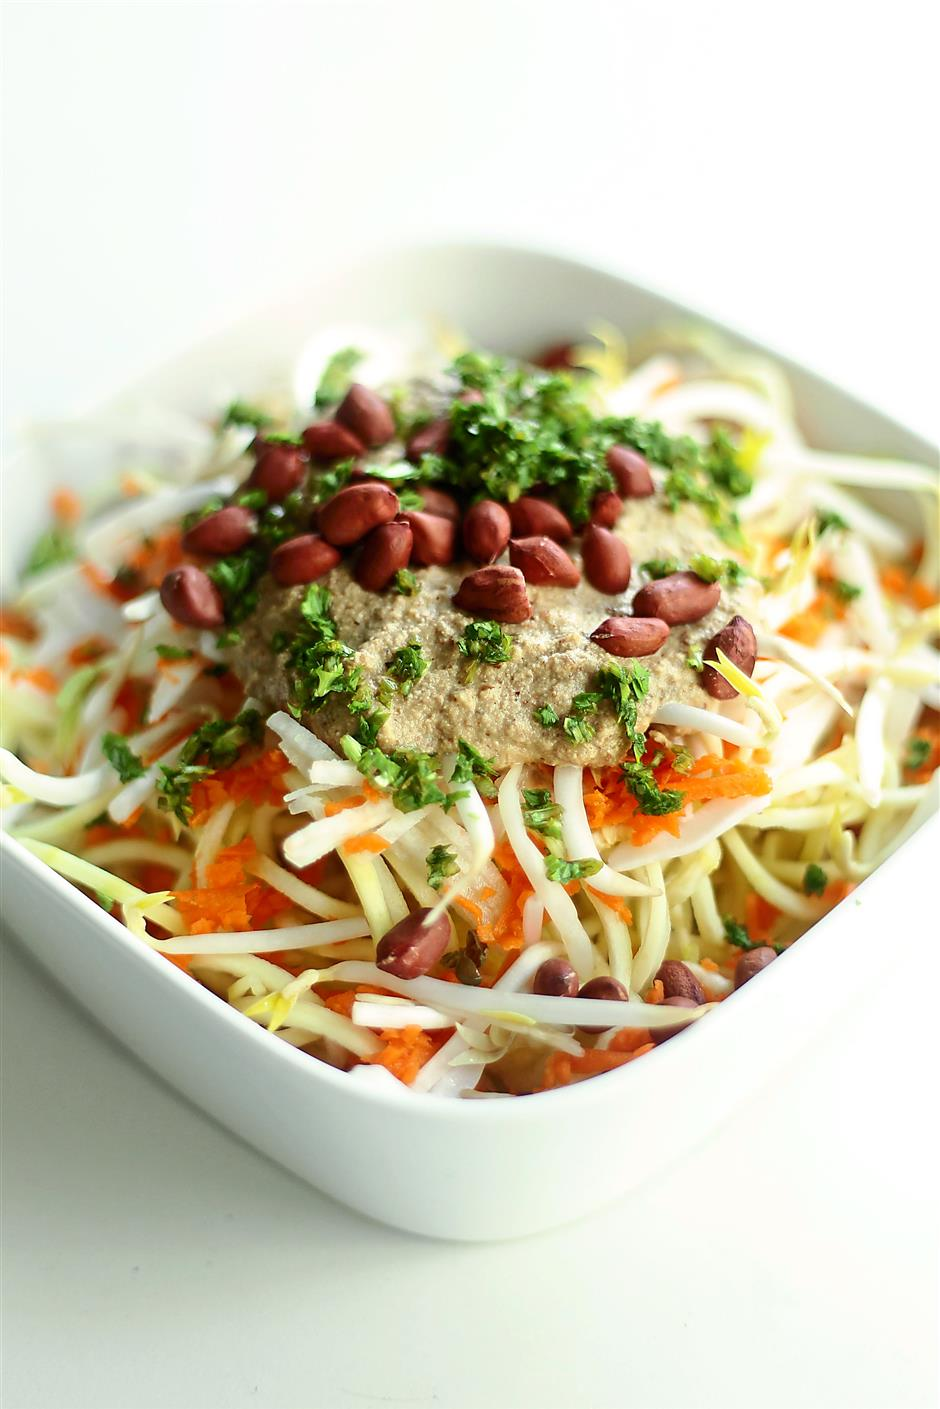 The raw pad thai prepared by Elke Wollschon of Delicious Detox Delivery uses only raw ingredients such as shredded sengkuang, carrots and nuts.